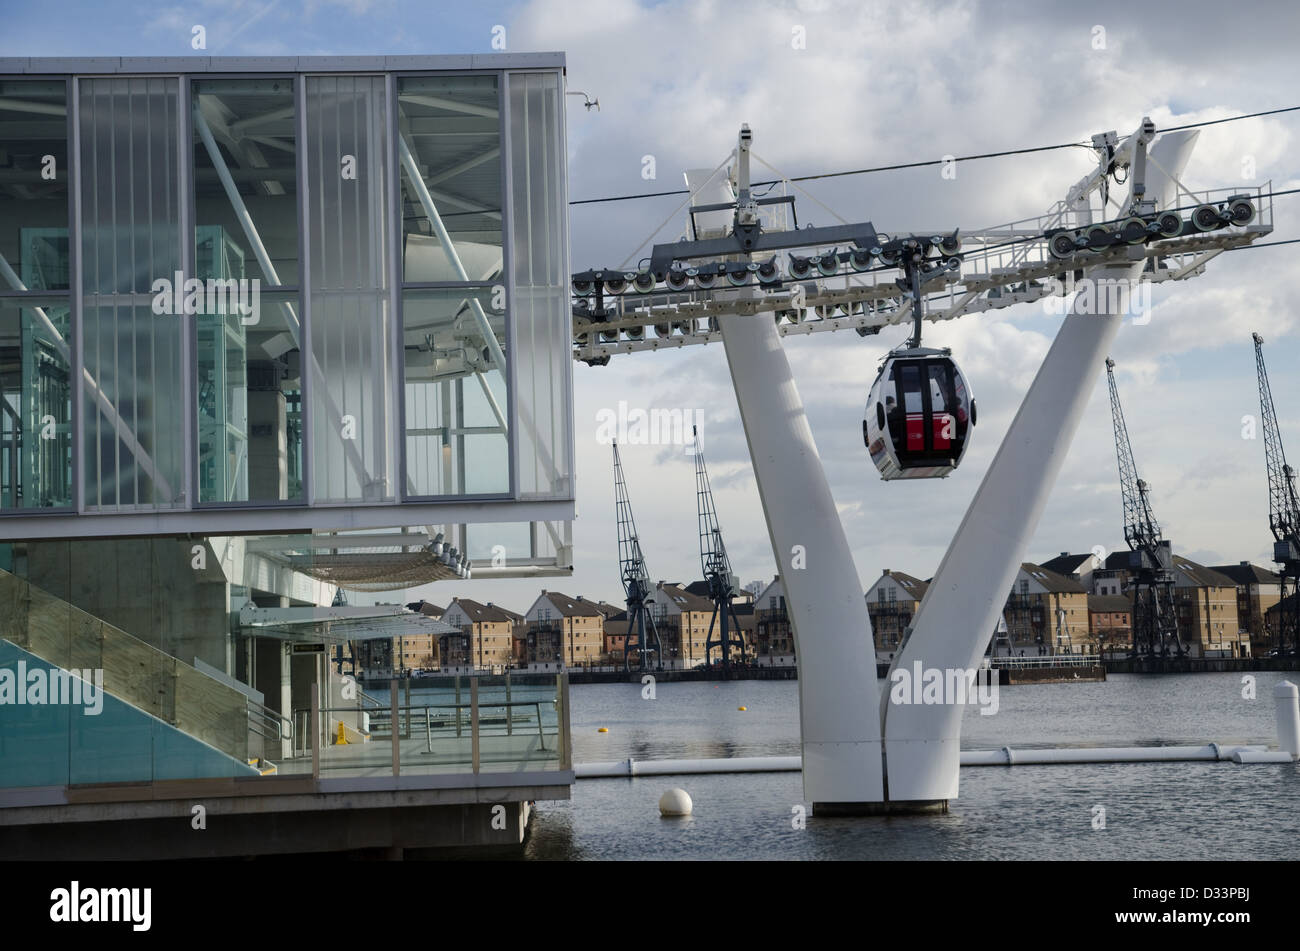 The Emirates Air-Line cable car station at Royal Docks in London's Docklands - Stock Image